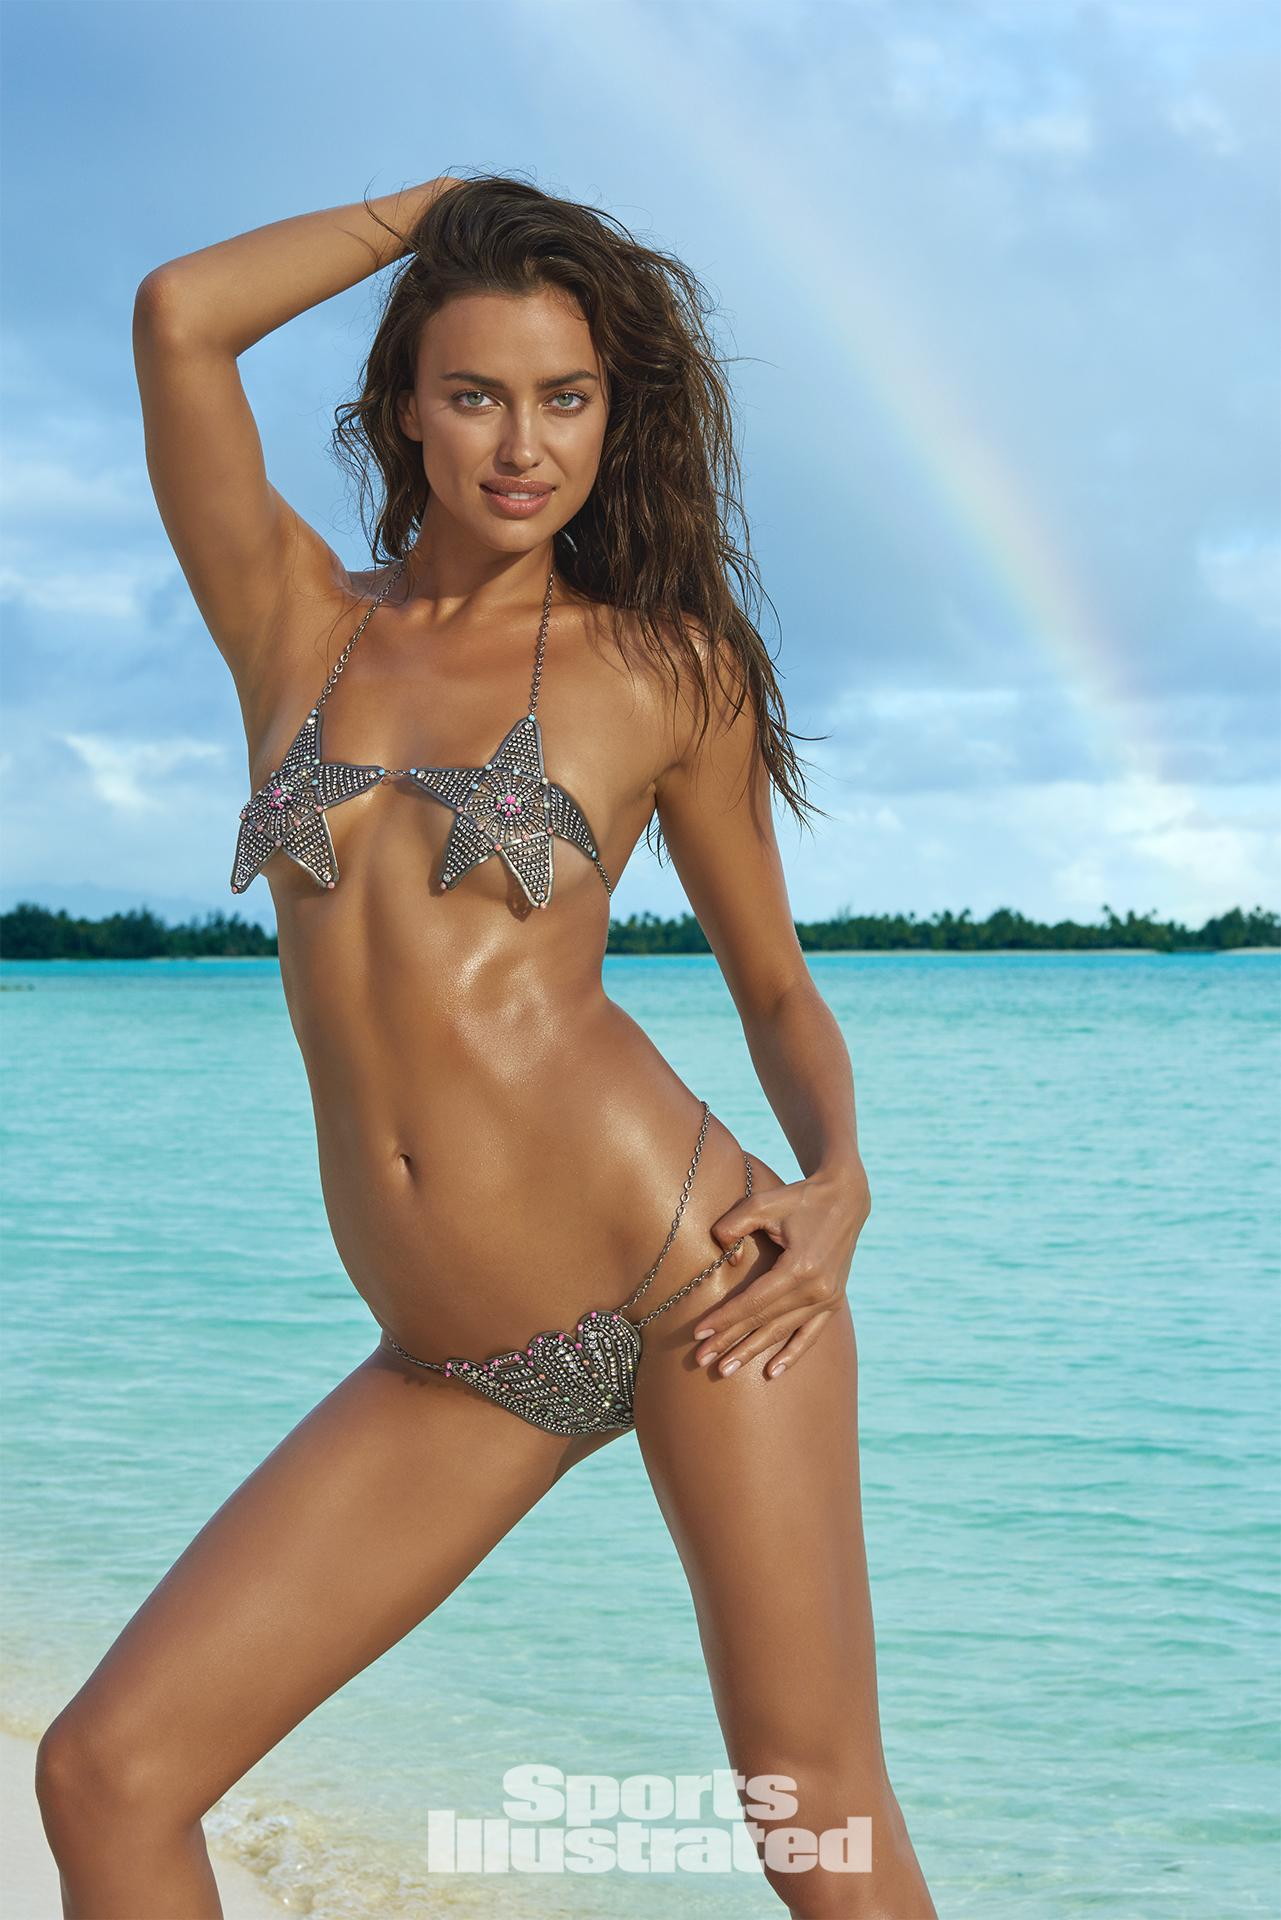 Irina Shayk Swimsuit Photos, Sports Illustrated Swimsuit 2016